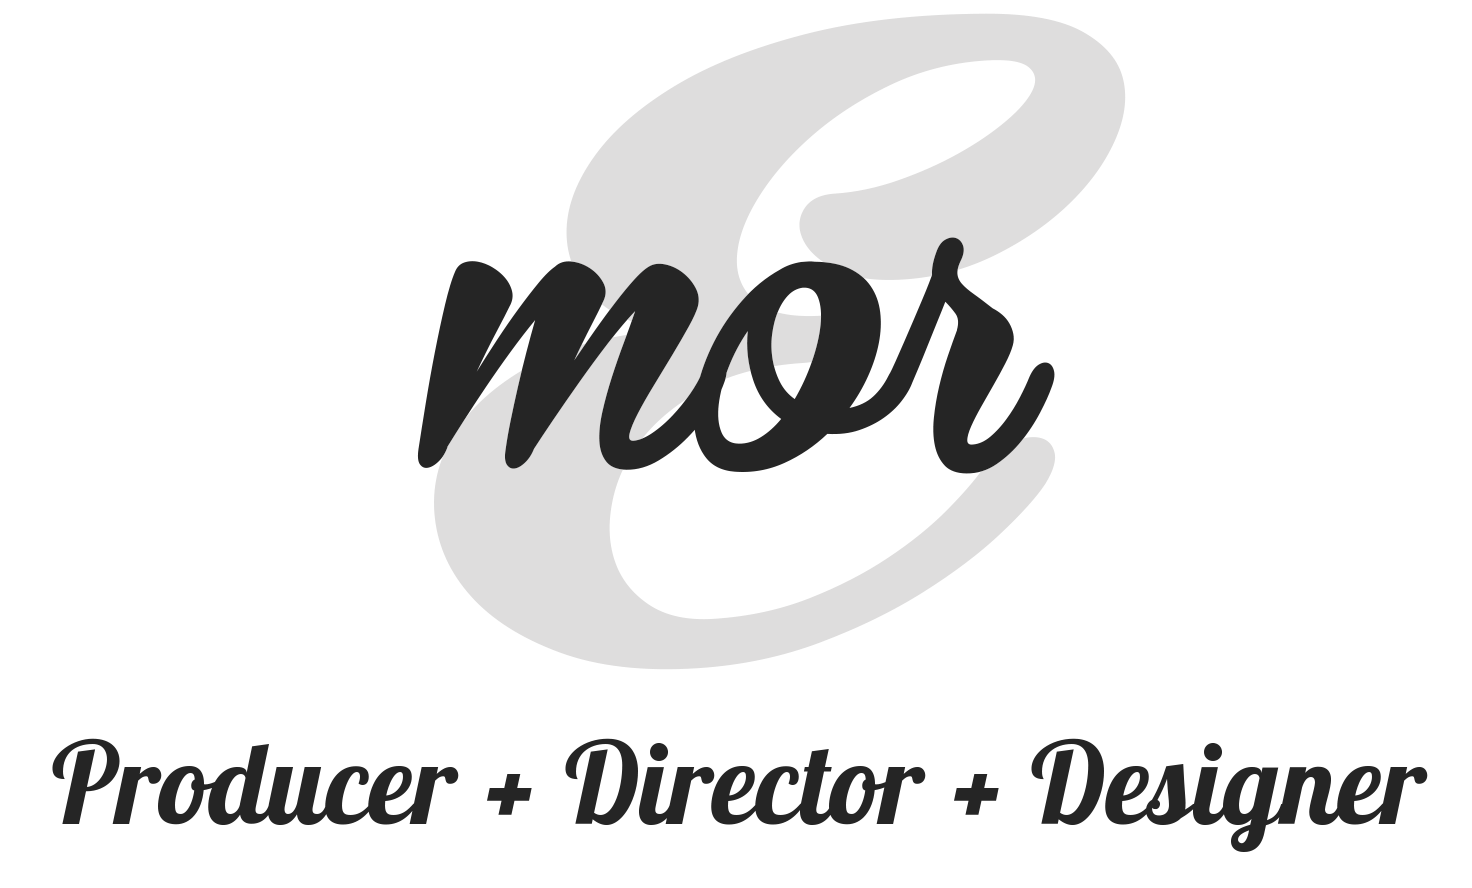 Producer, Director, & Designer, Mor Shamay.